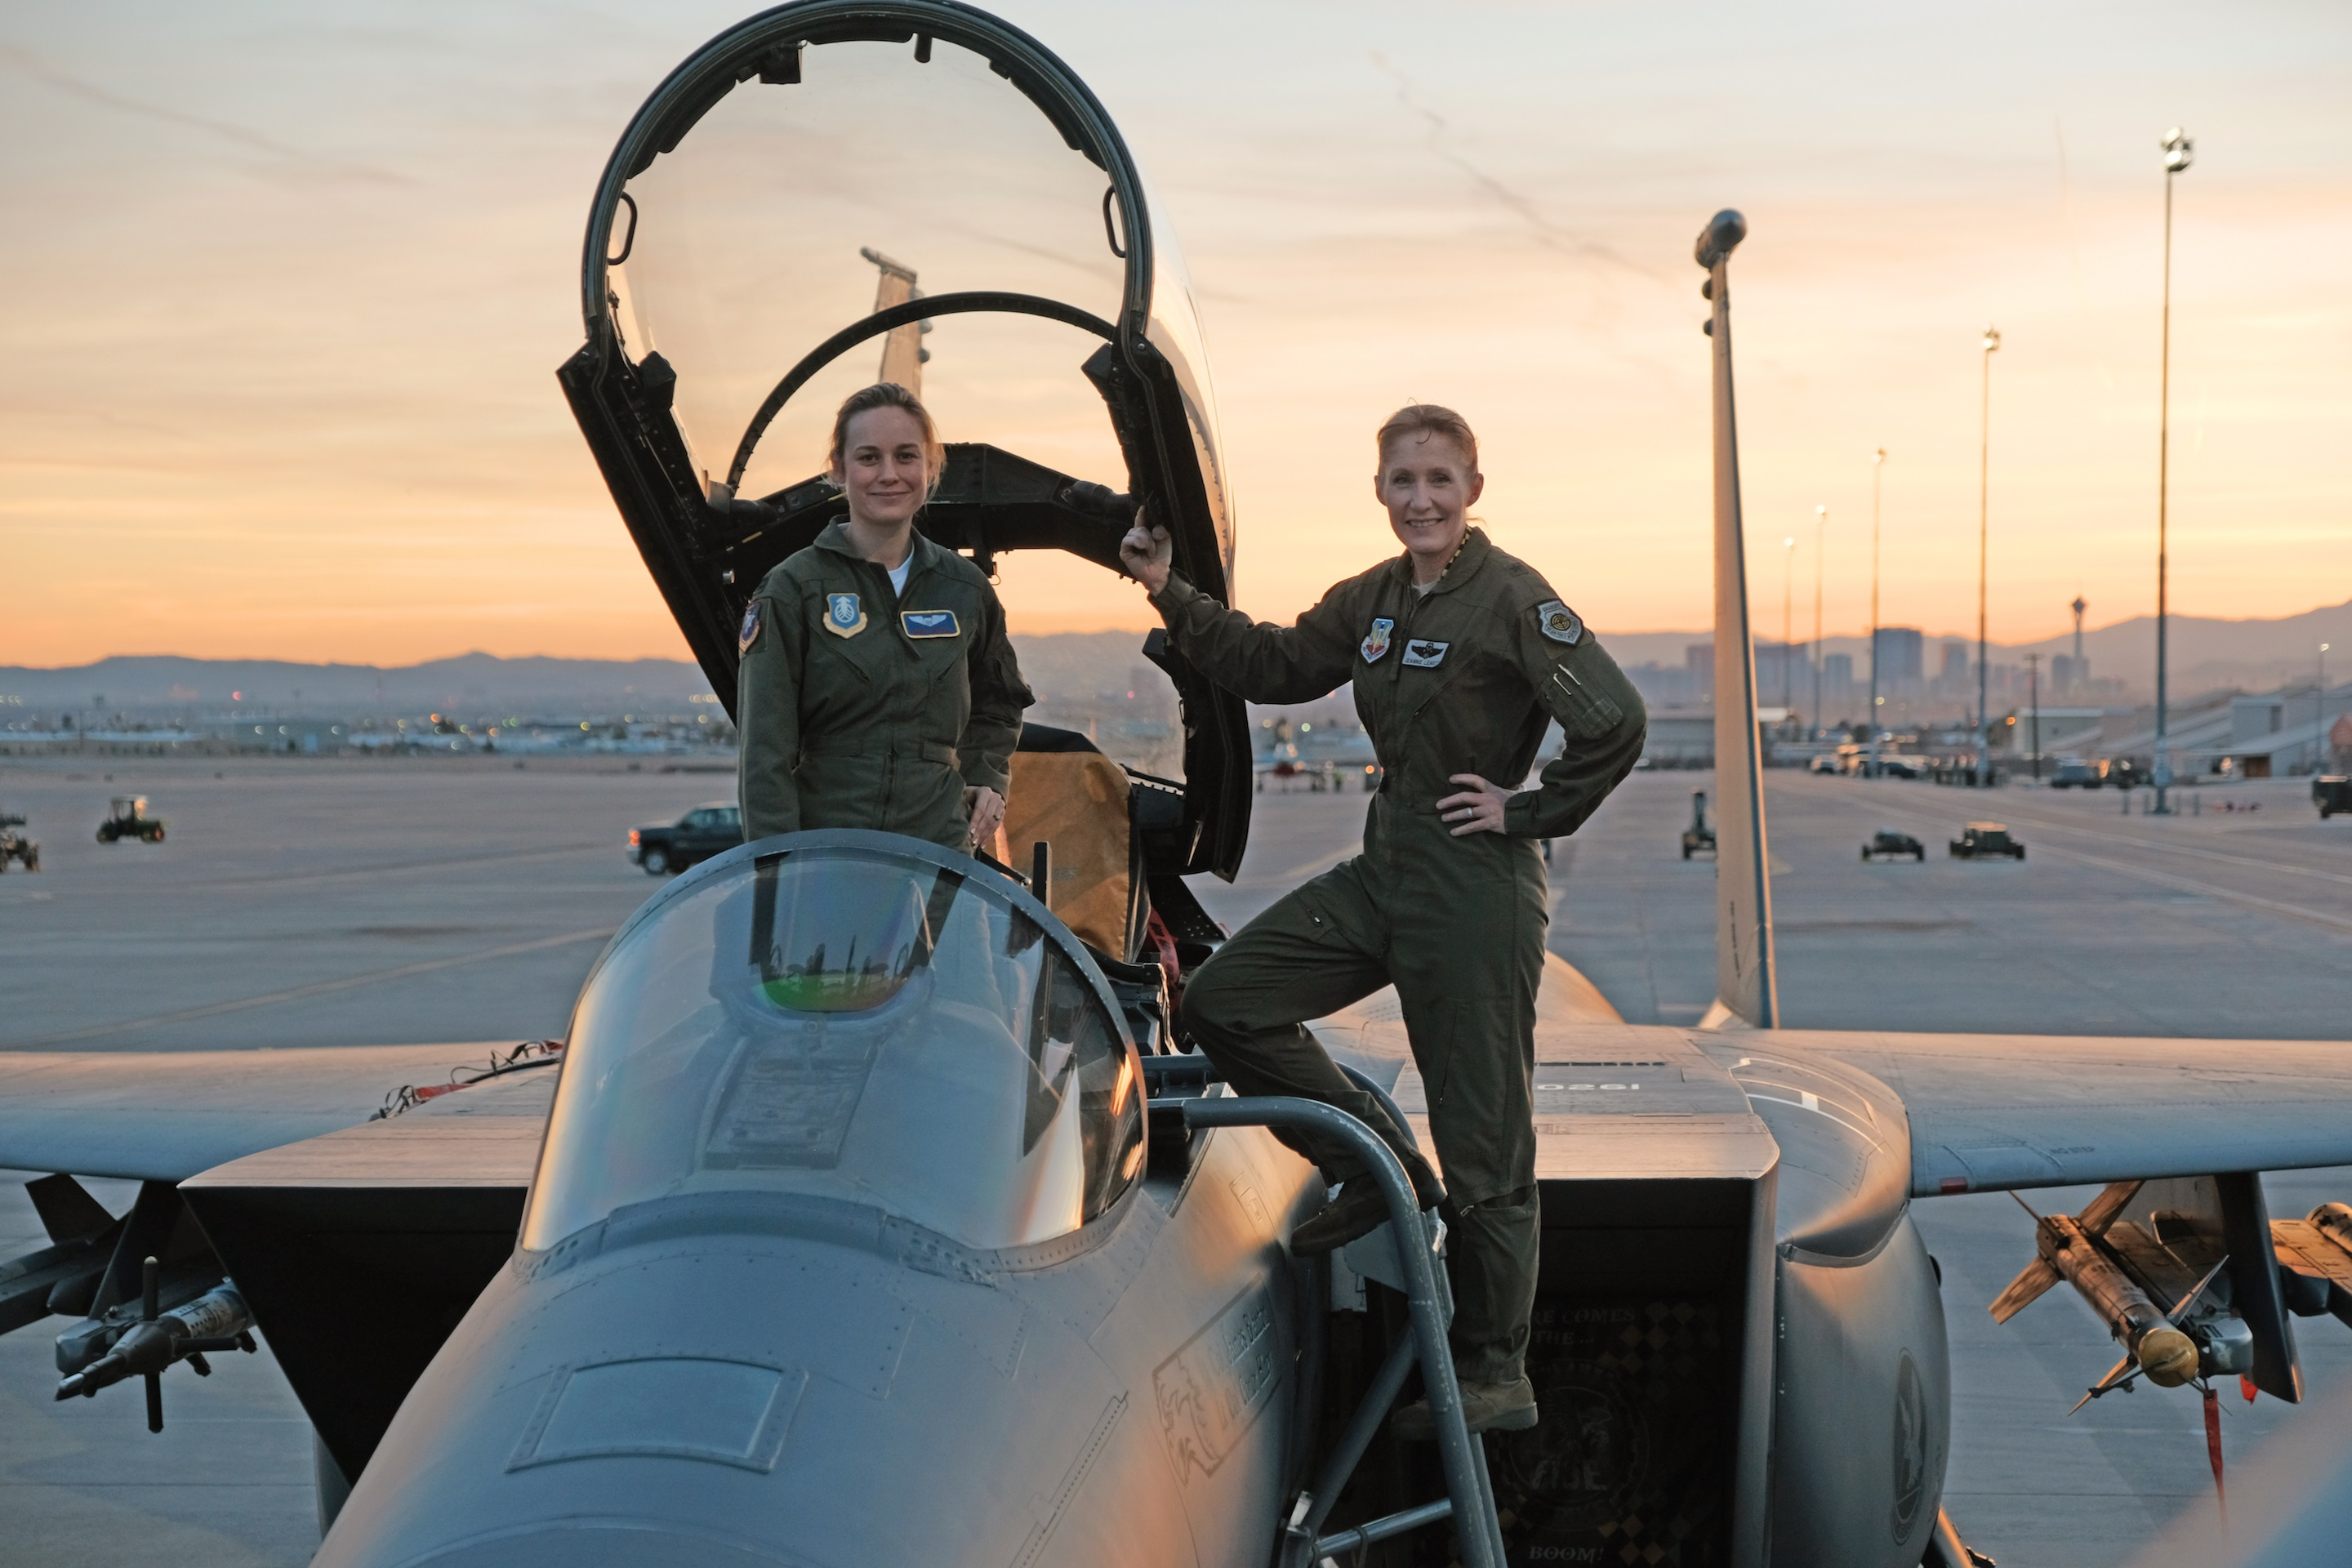 Brie Larson at Nellis Air Force Base as part of her research for Captain Marvel